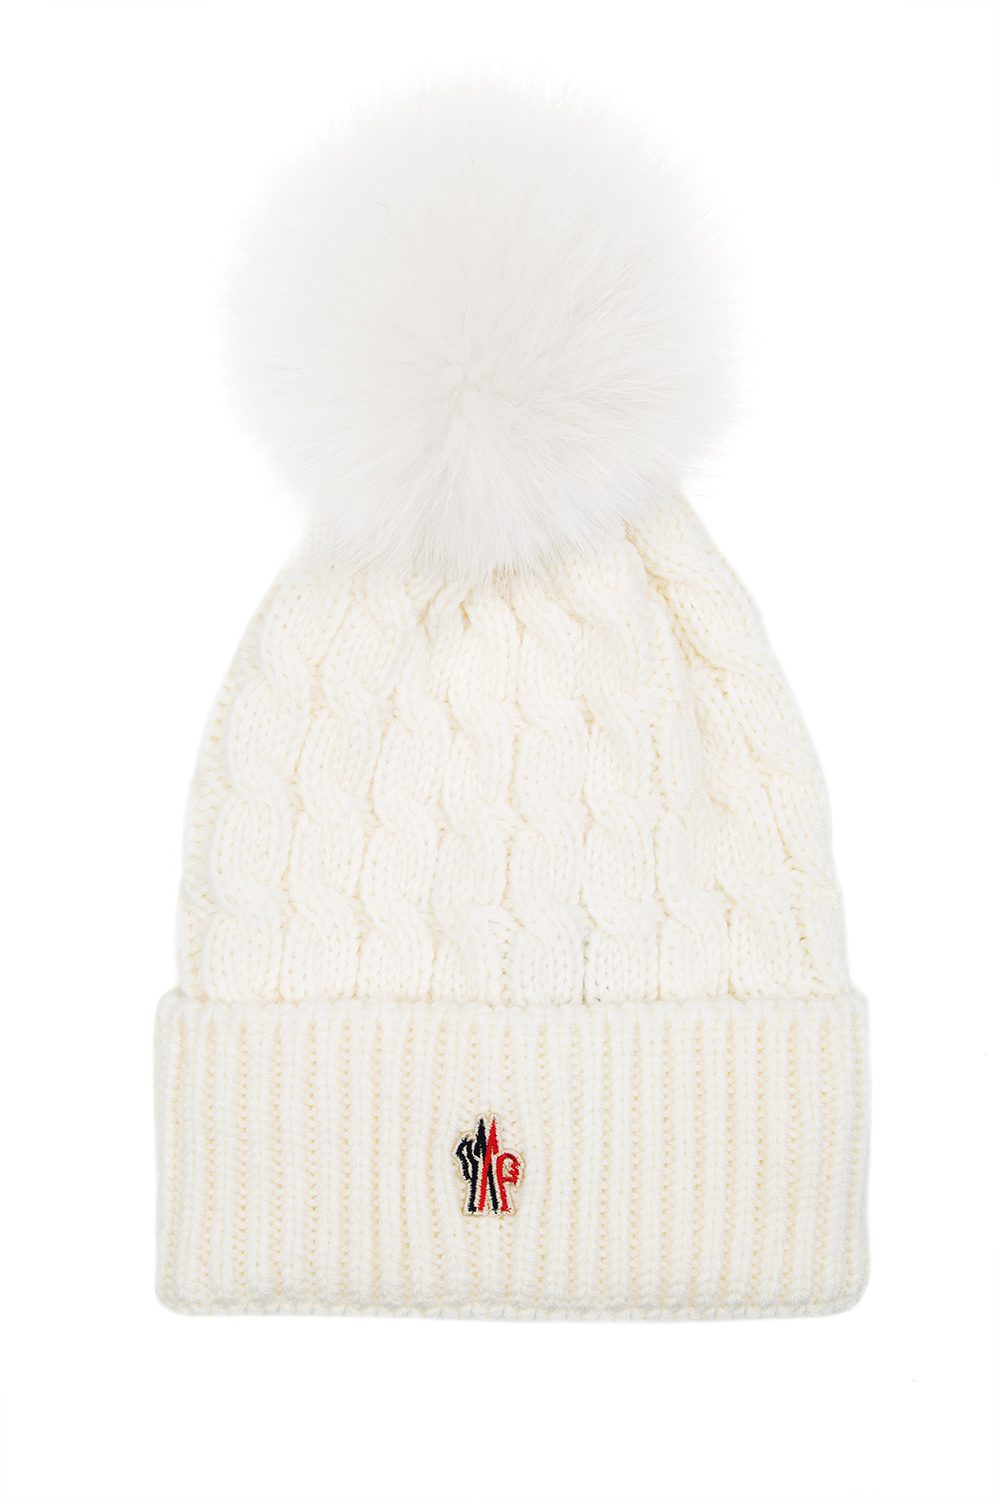 Moncler Grenoble Women s Pom-Pom Beanie Hat Cream - Linea Fashion 3e2d8432fbe